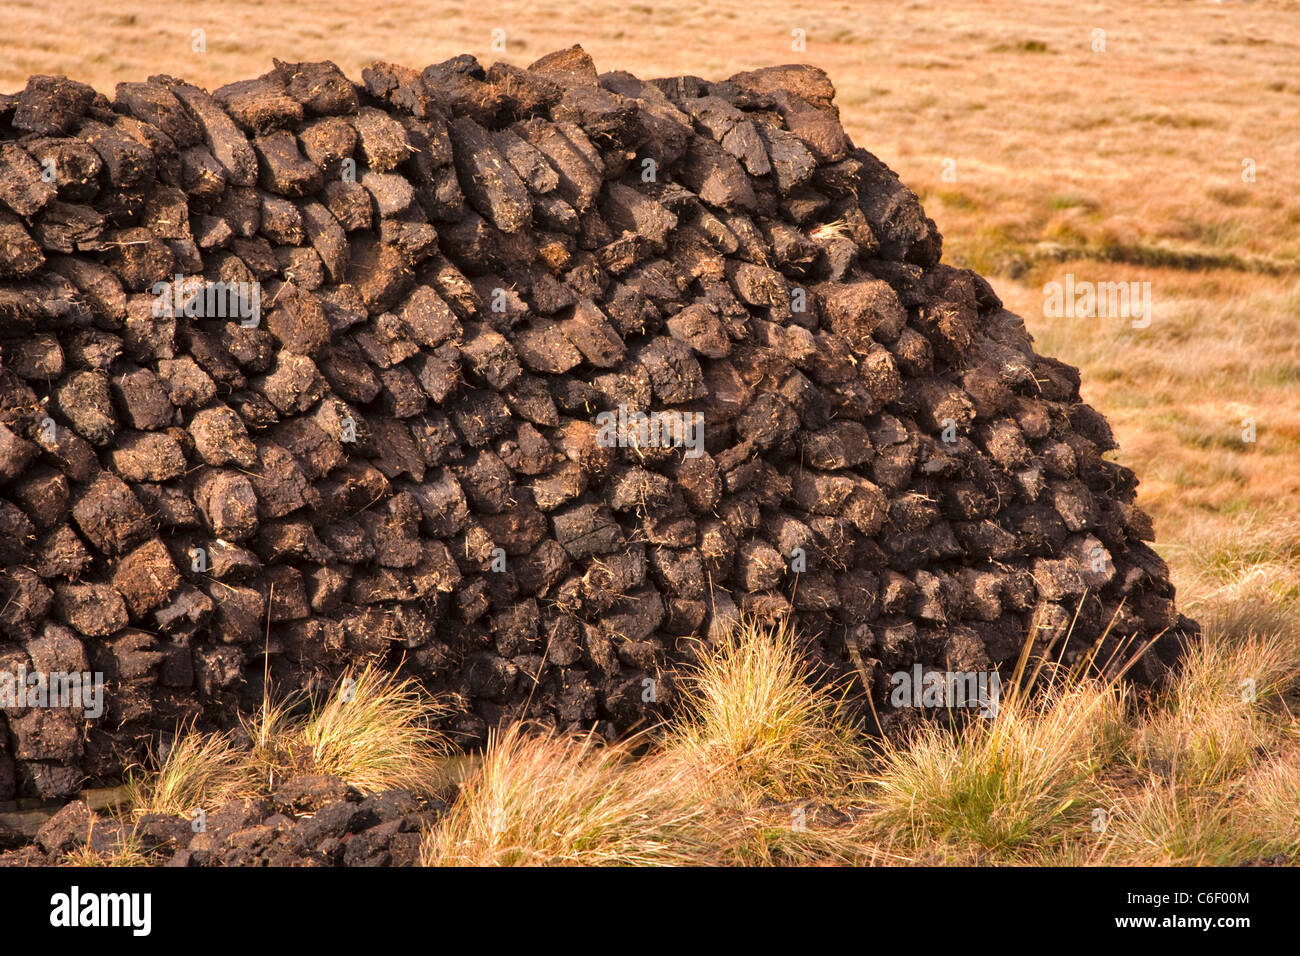 Peat turves drying in a stack, Connemara, Republic of Ireland - Stock Image